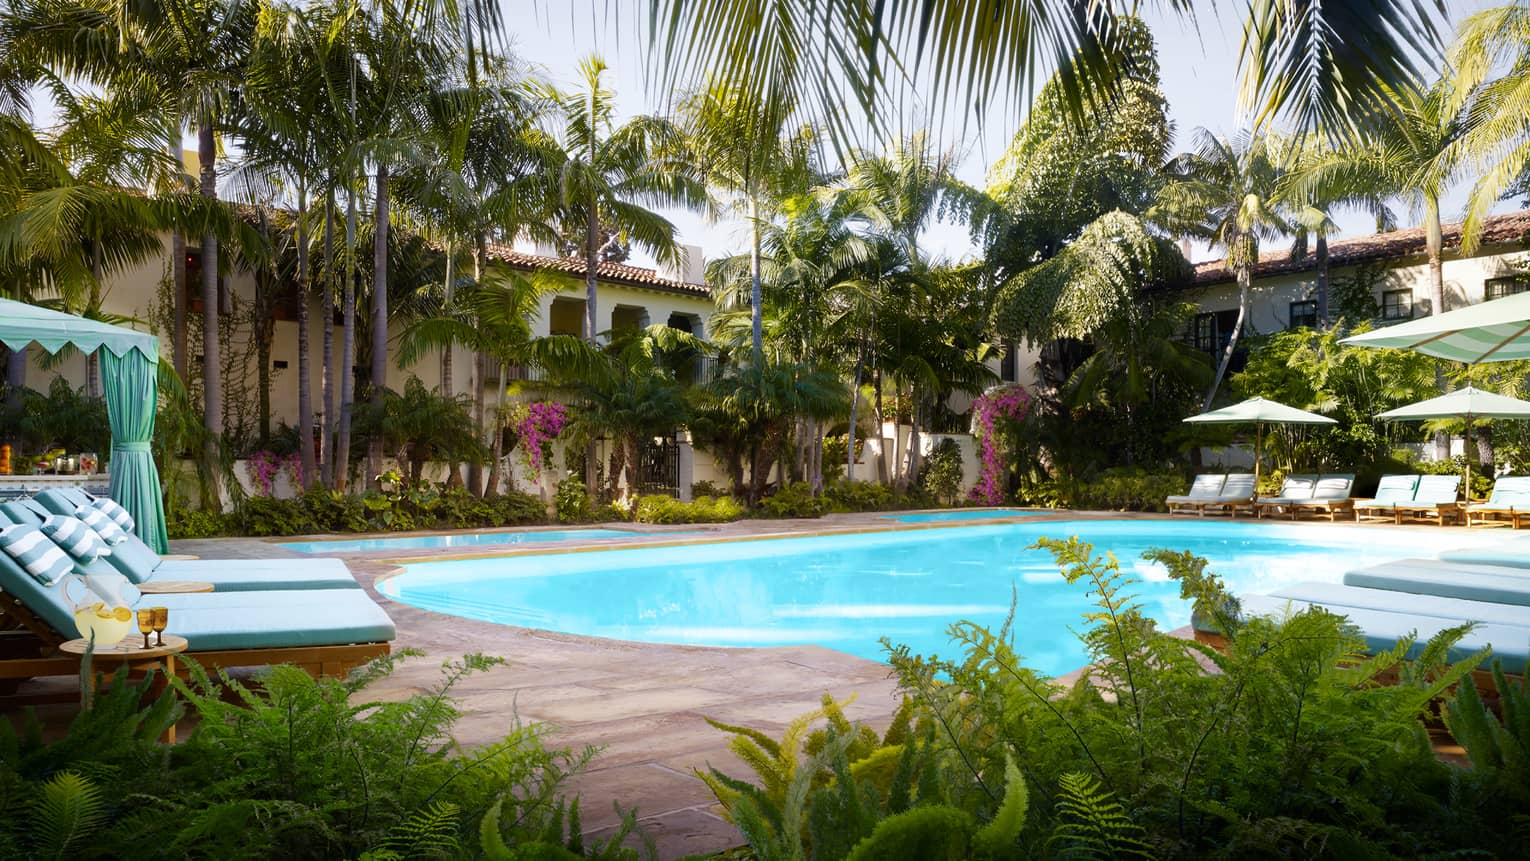 Tropical trees, plants, lounge chairs and cabanas around Jungle Pool